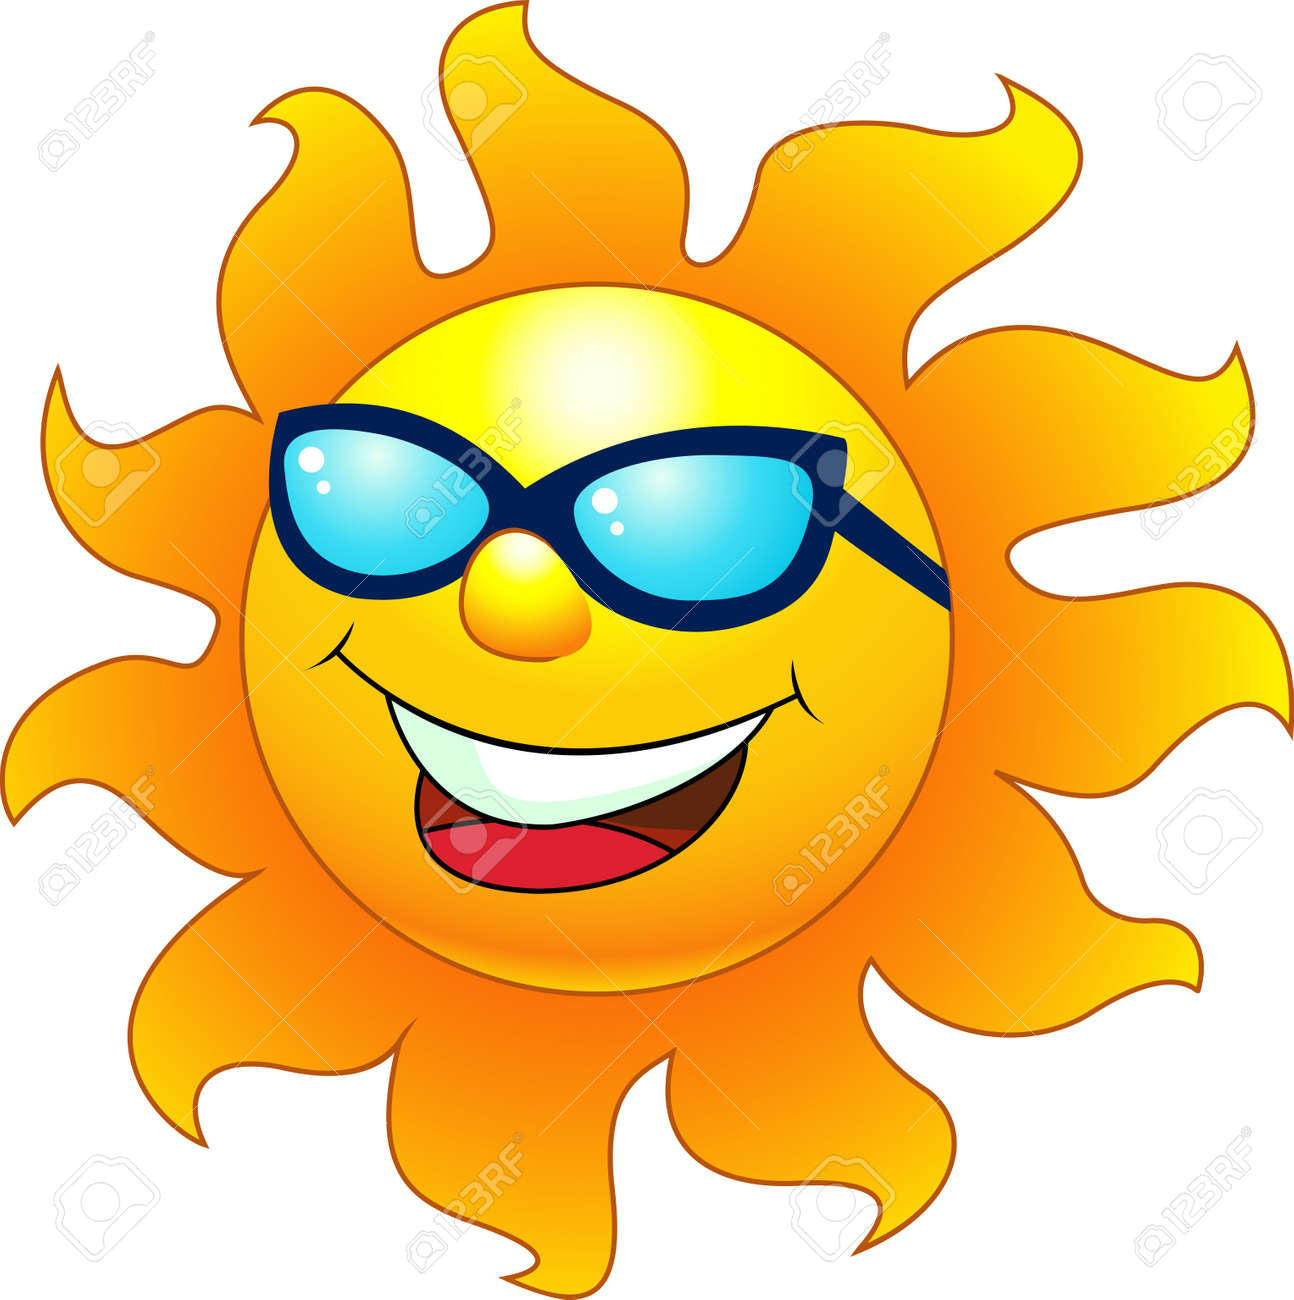 Image result for Images of Sun